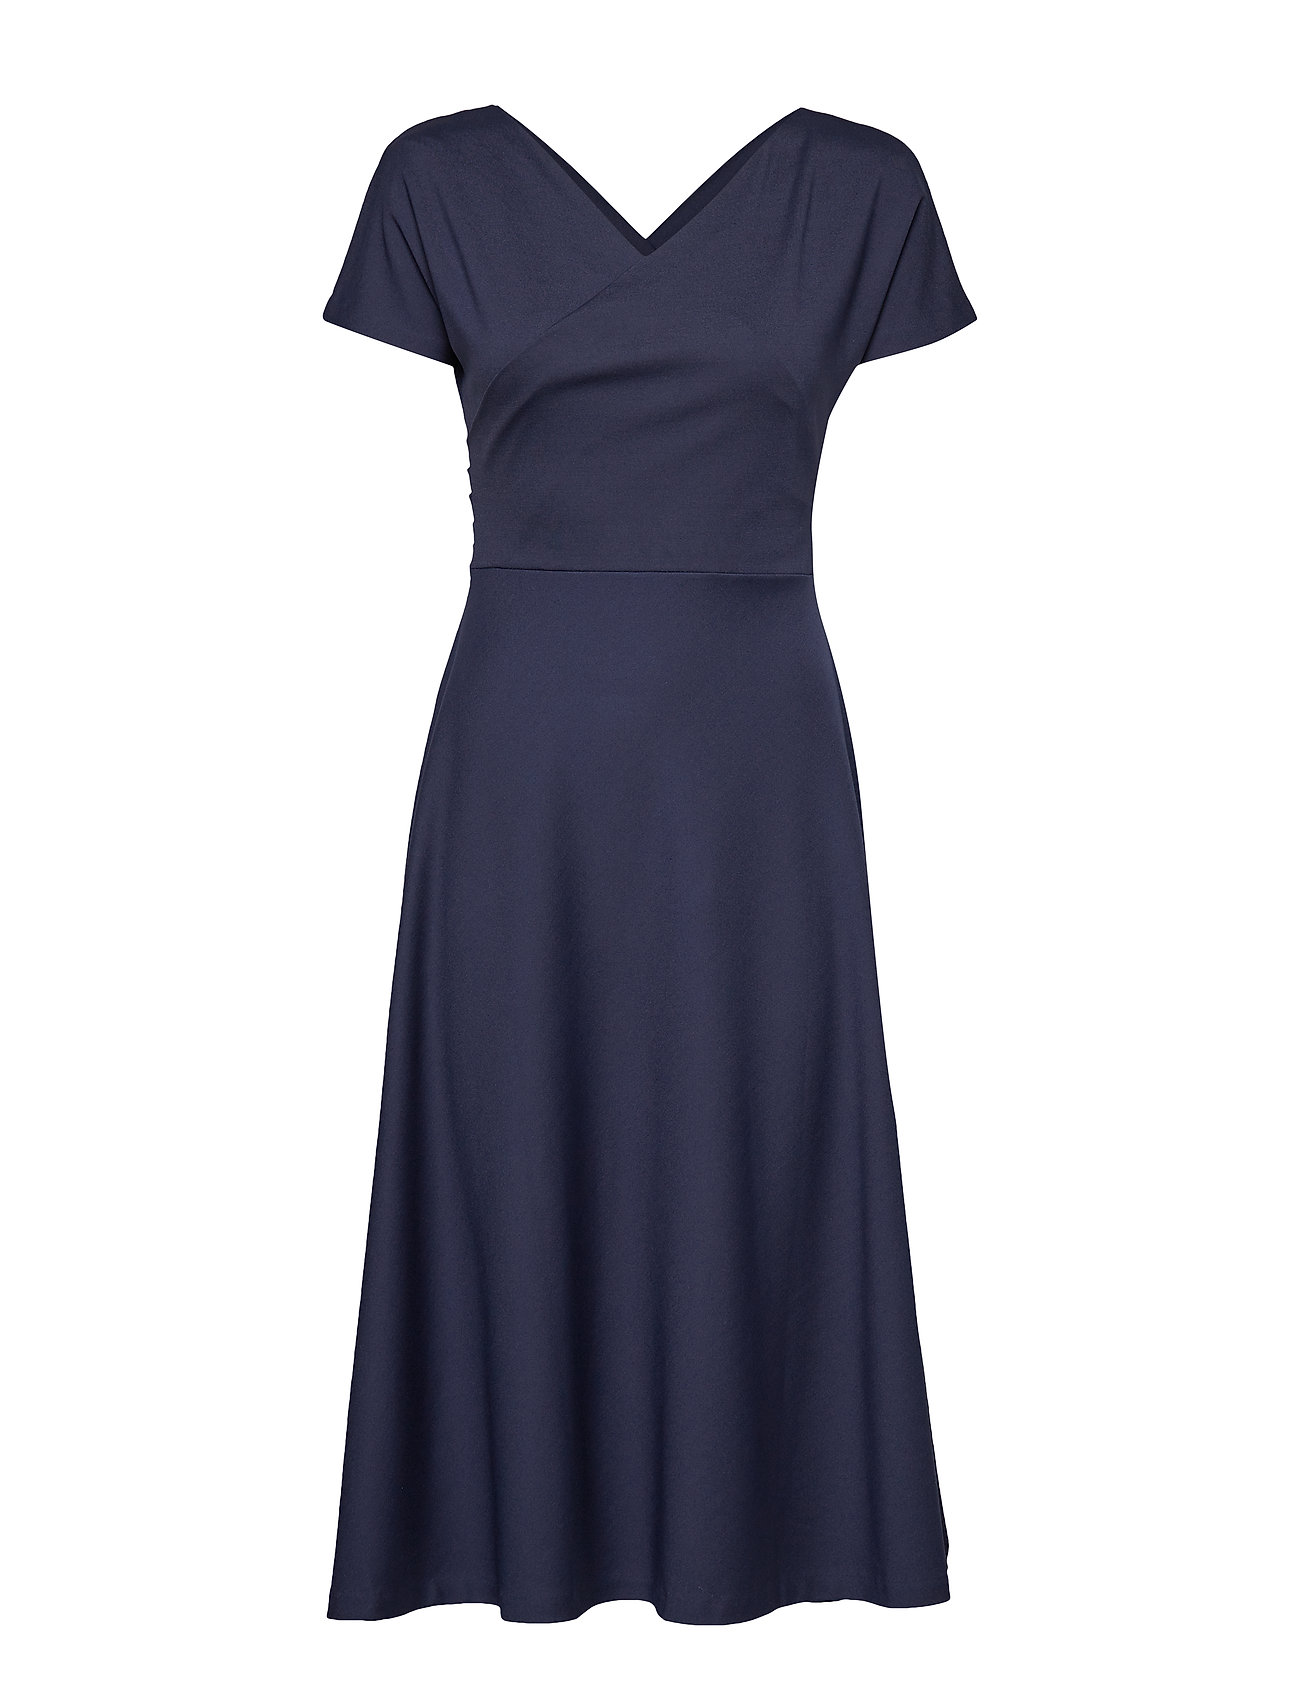 Residus    ANIS DRESS  - Kleider    EVENING BLUE